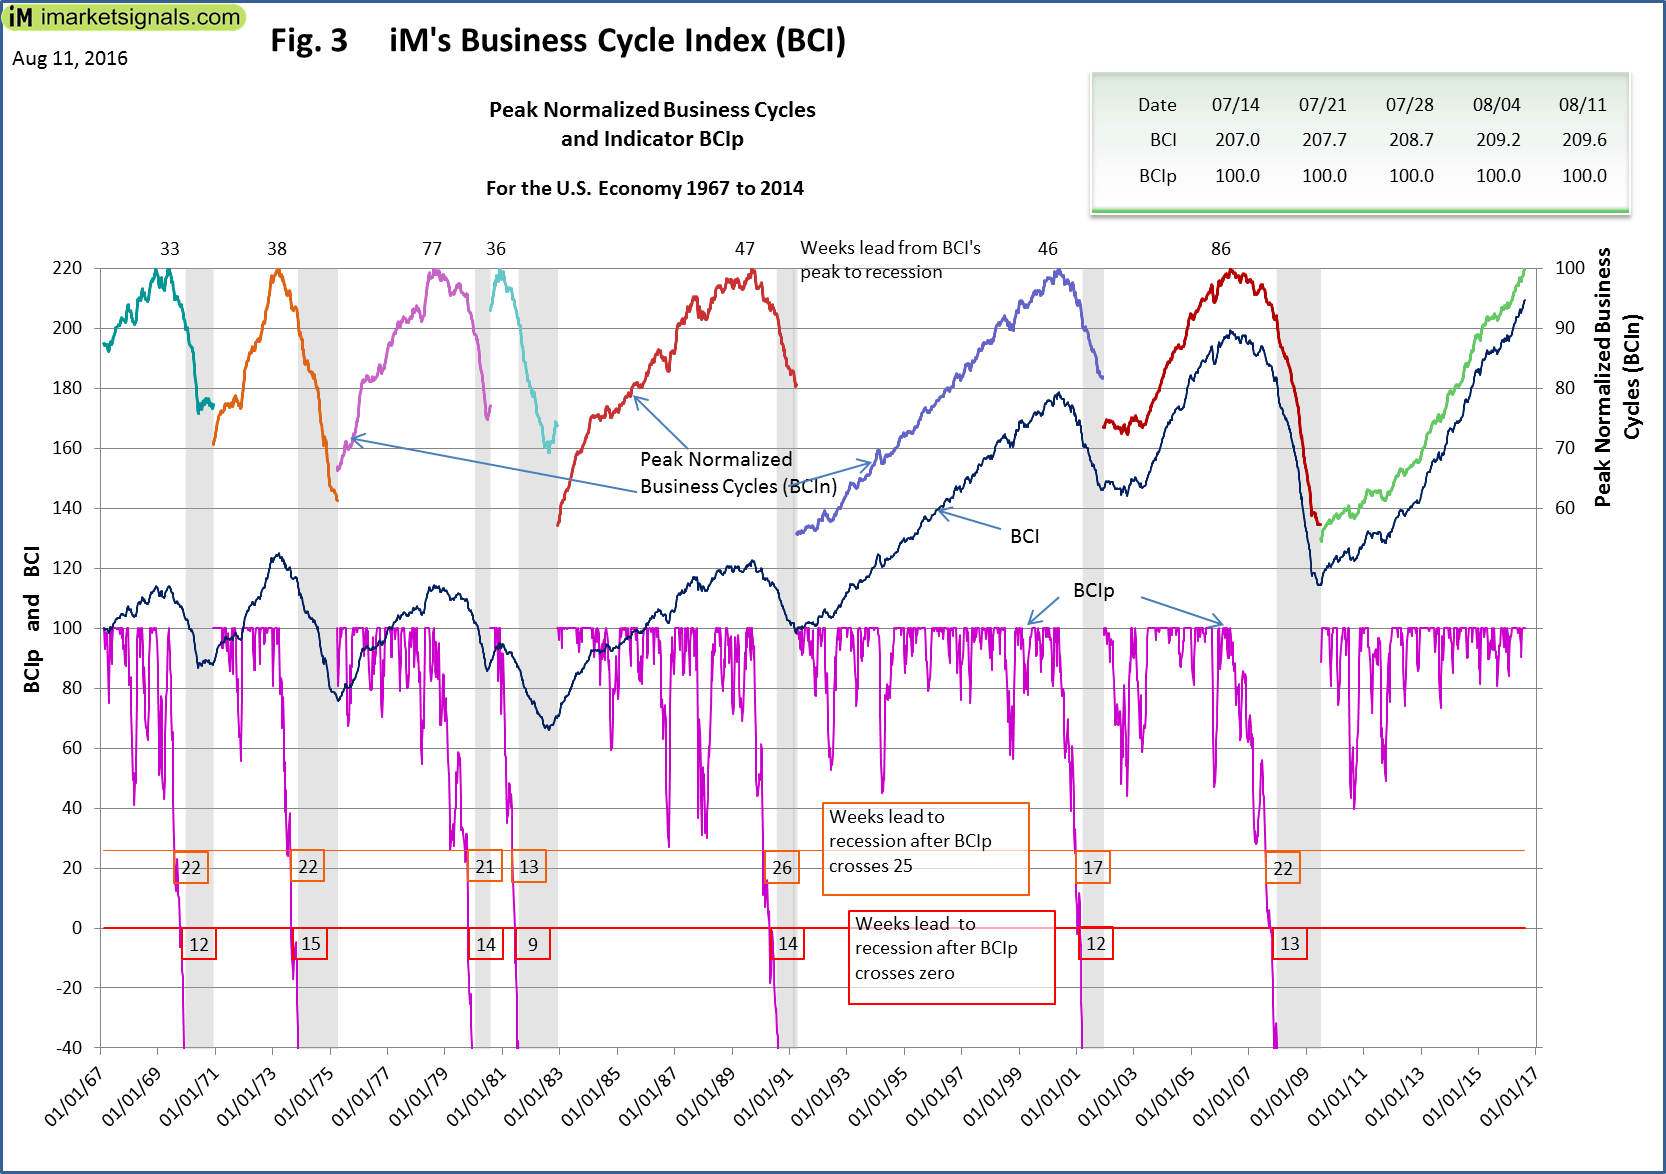 BCI-Fig-3-8-11-2016